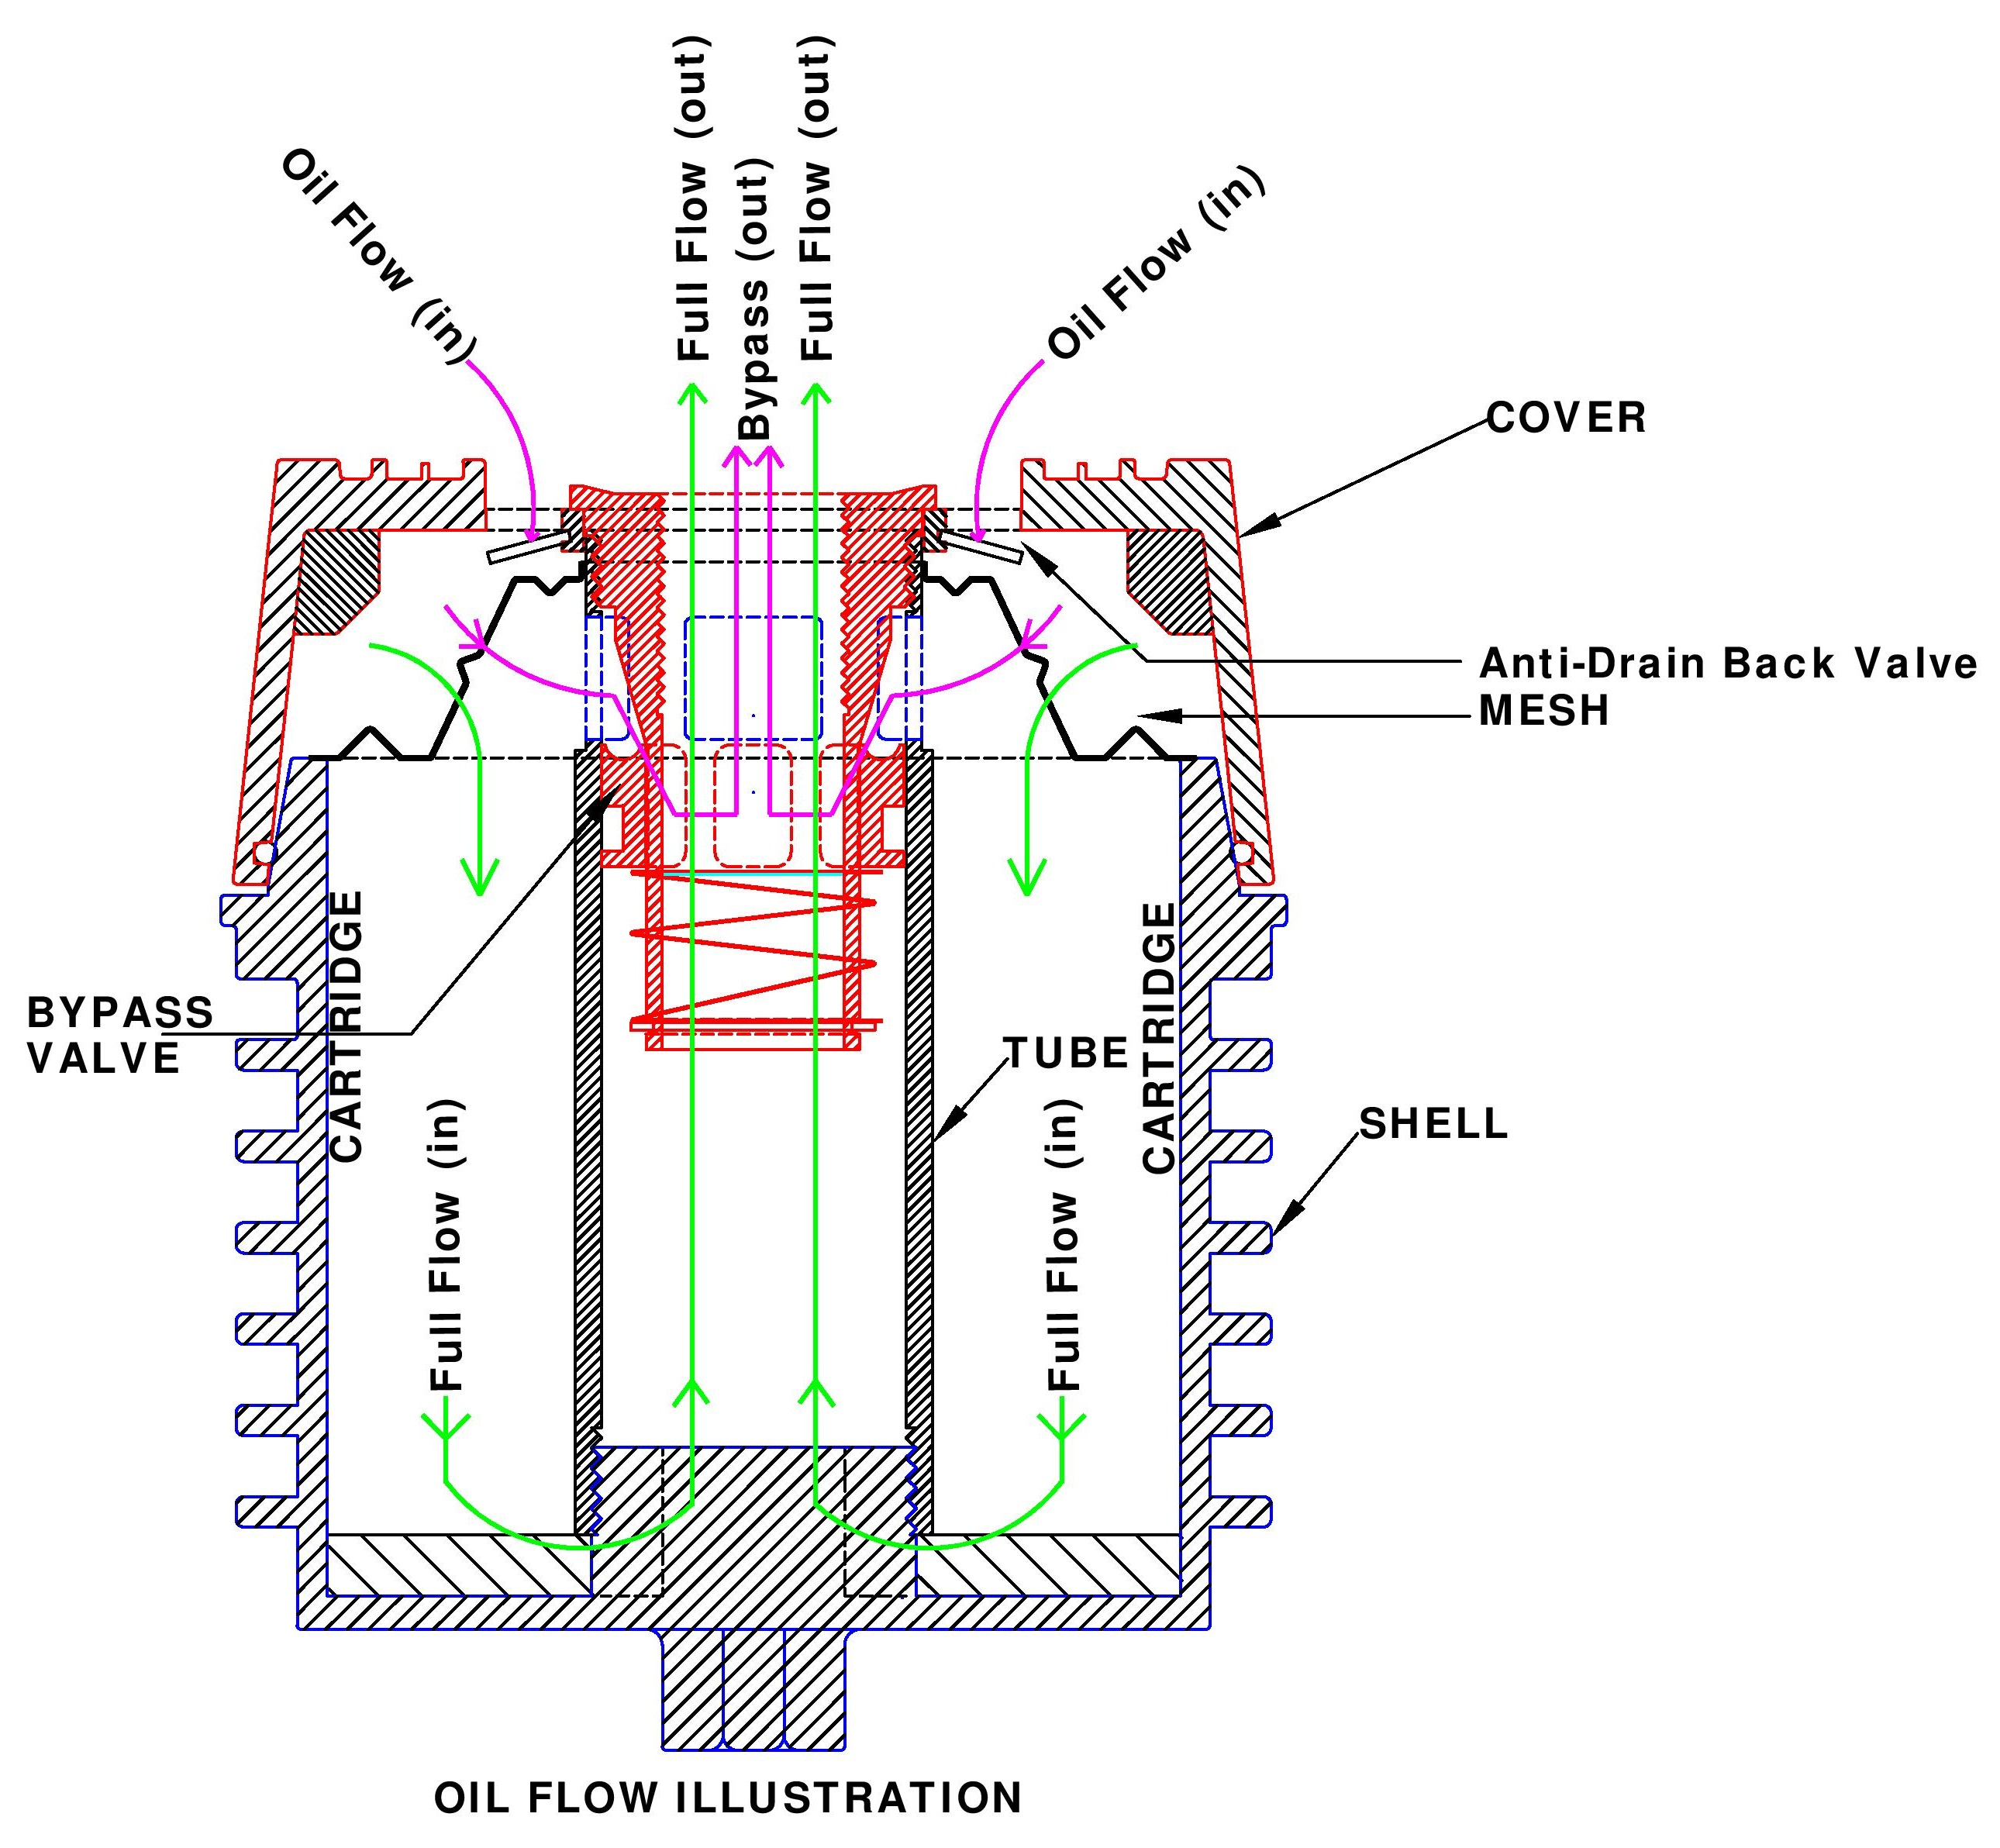 What is a bypass valve and how does it work